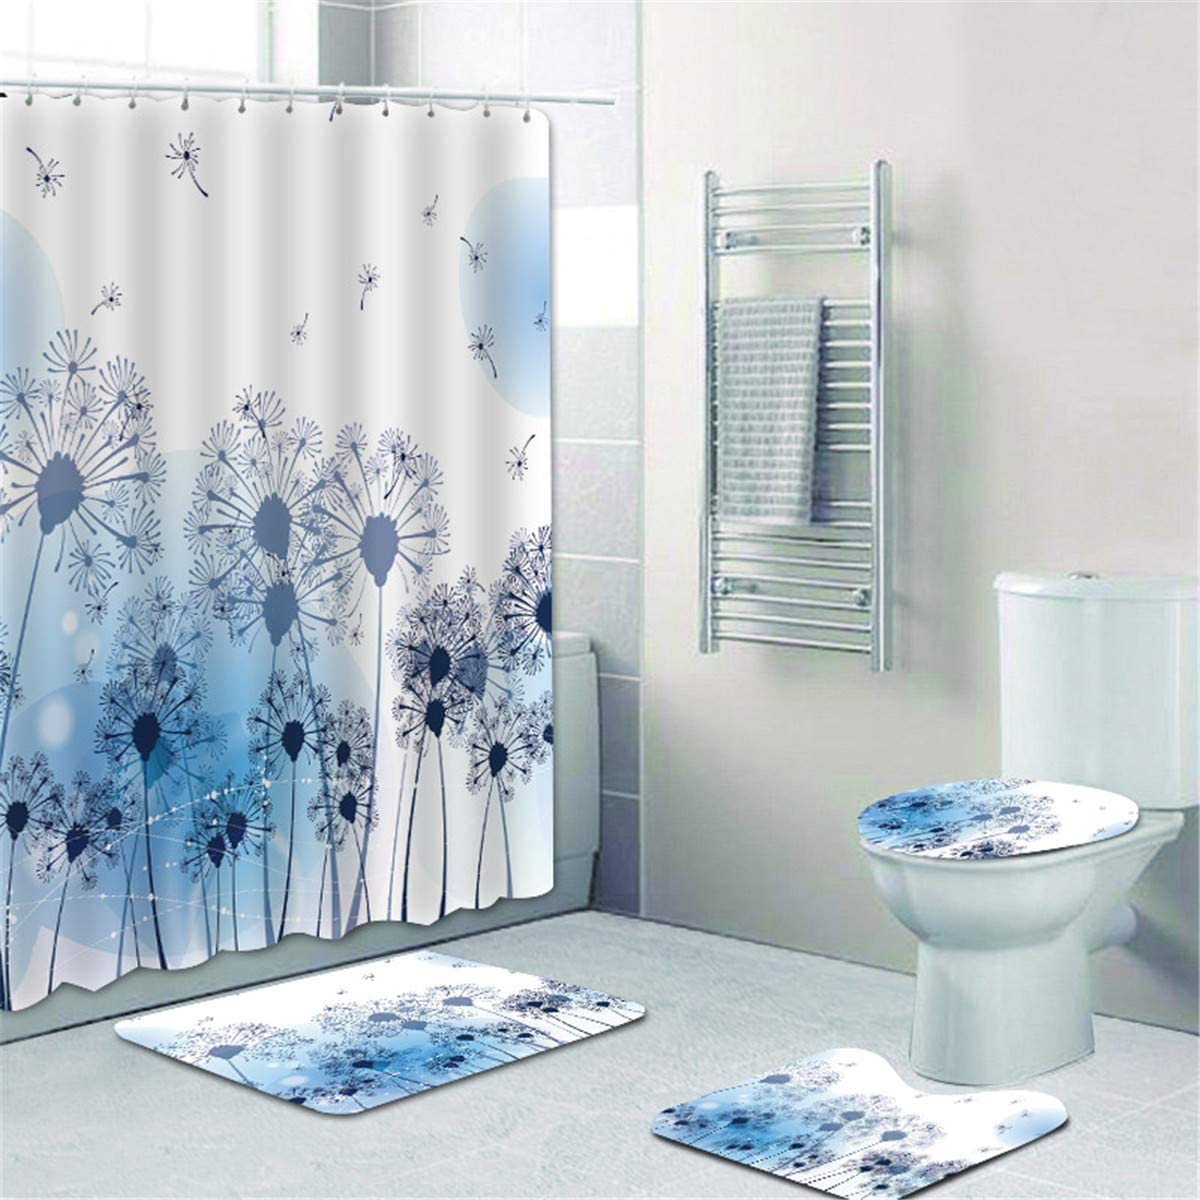 MrLYouth Blue Dandelions with Seeds Blowing in The Wind Bathroom Sets Shower Curtain Sets with 12 Hooks,Non-Slip Rugs,Toilet Lid Cover and Bath Mat,Romantic Waterproof Bathroom Decor